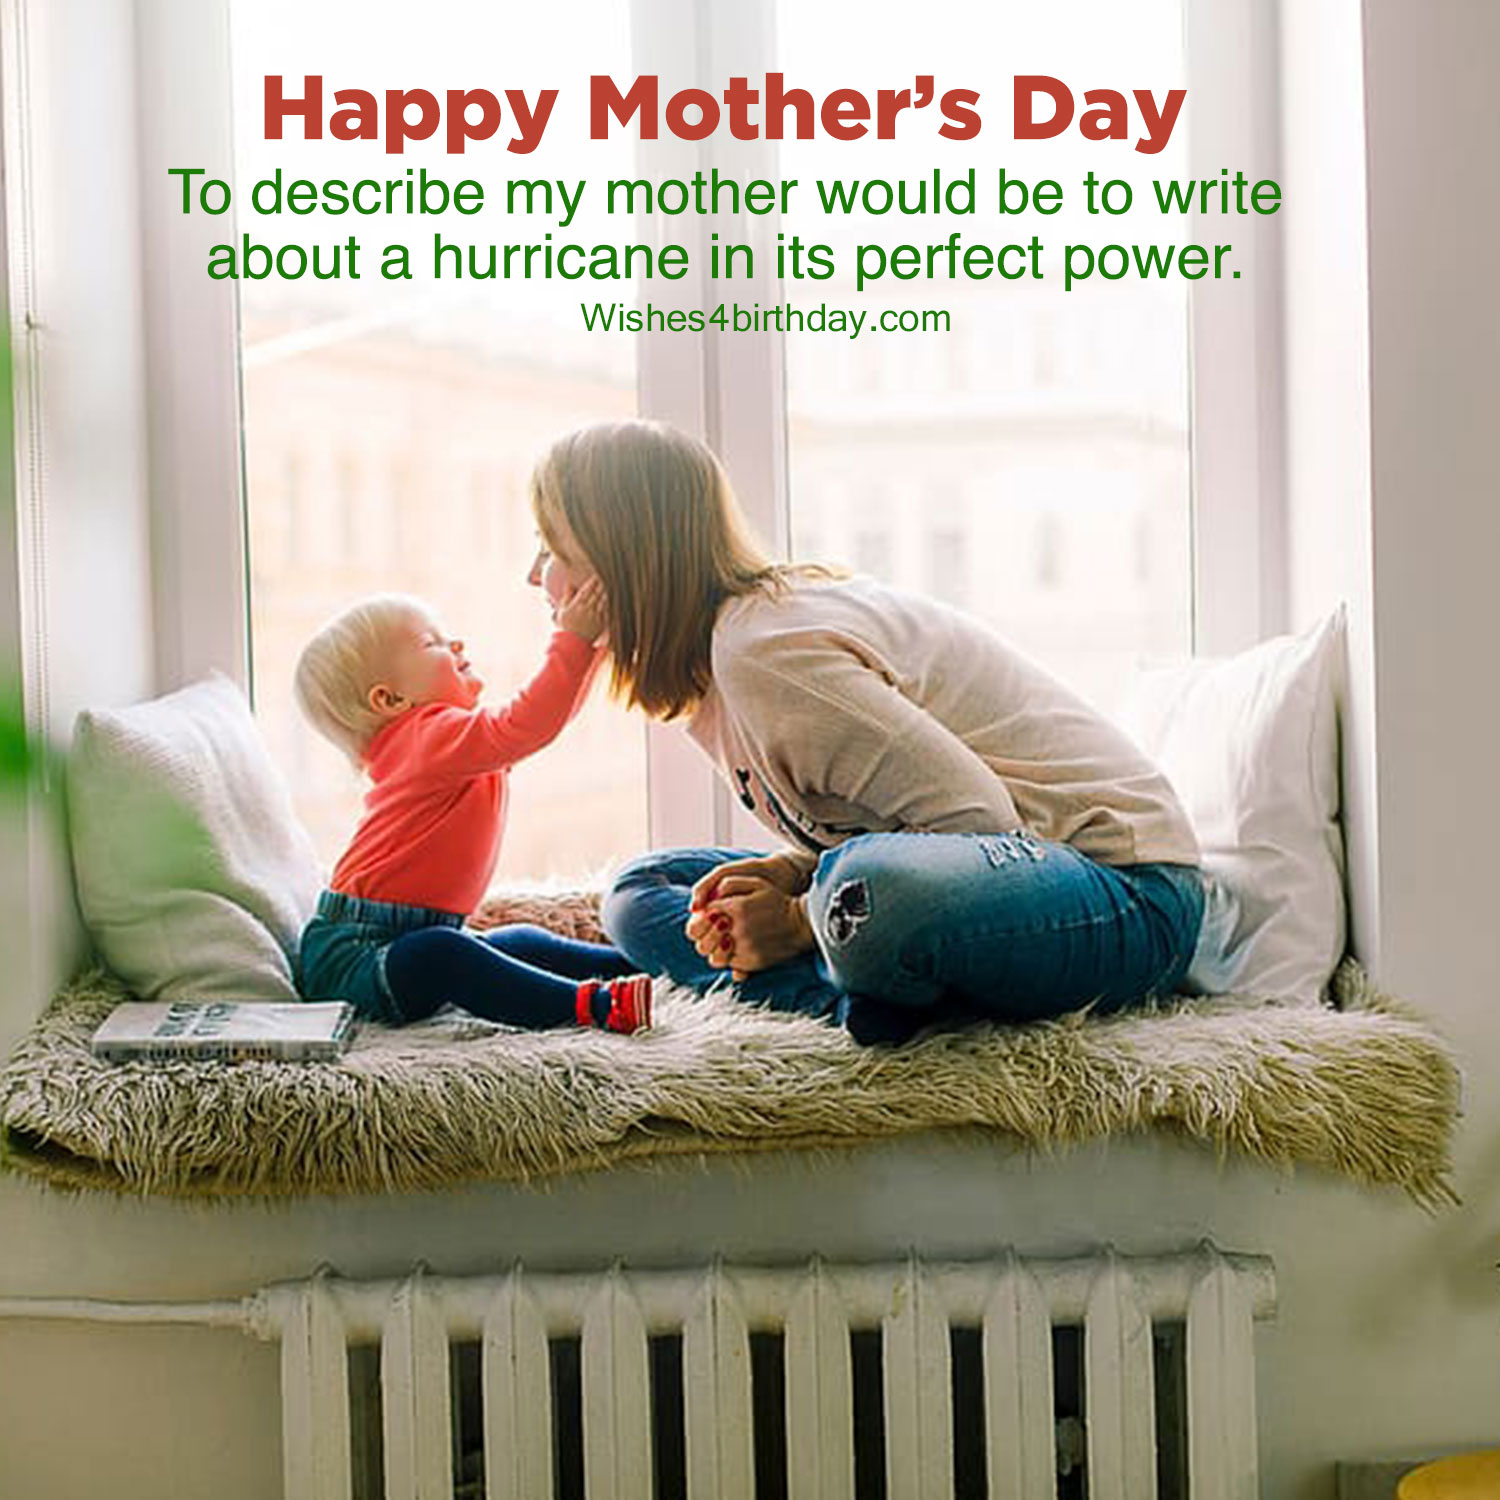 Top Attractive Happy Mother's Day images 2021 - Happy ...